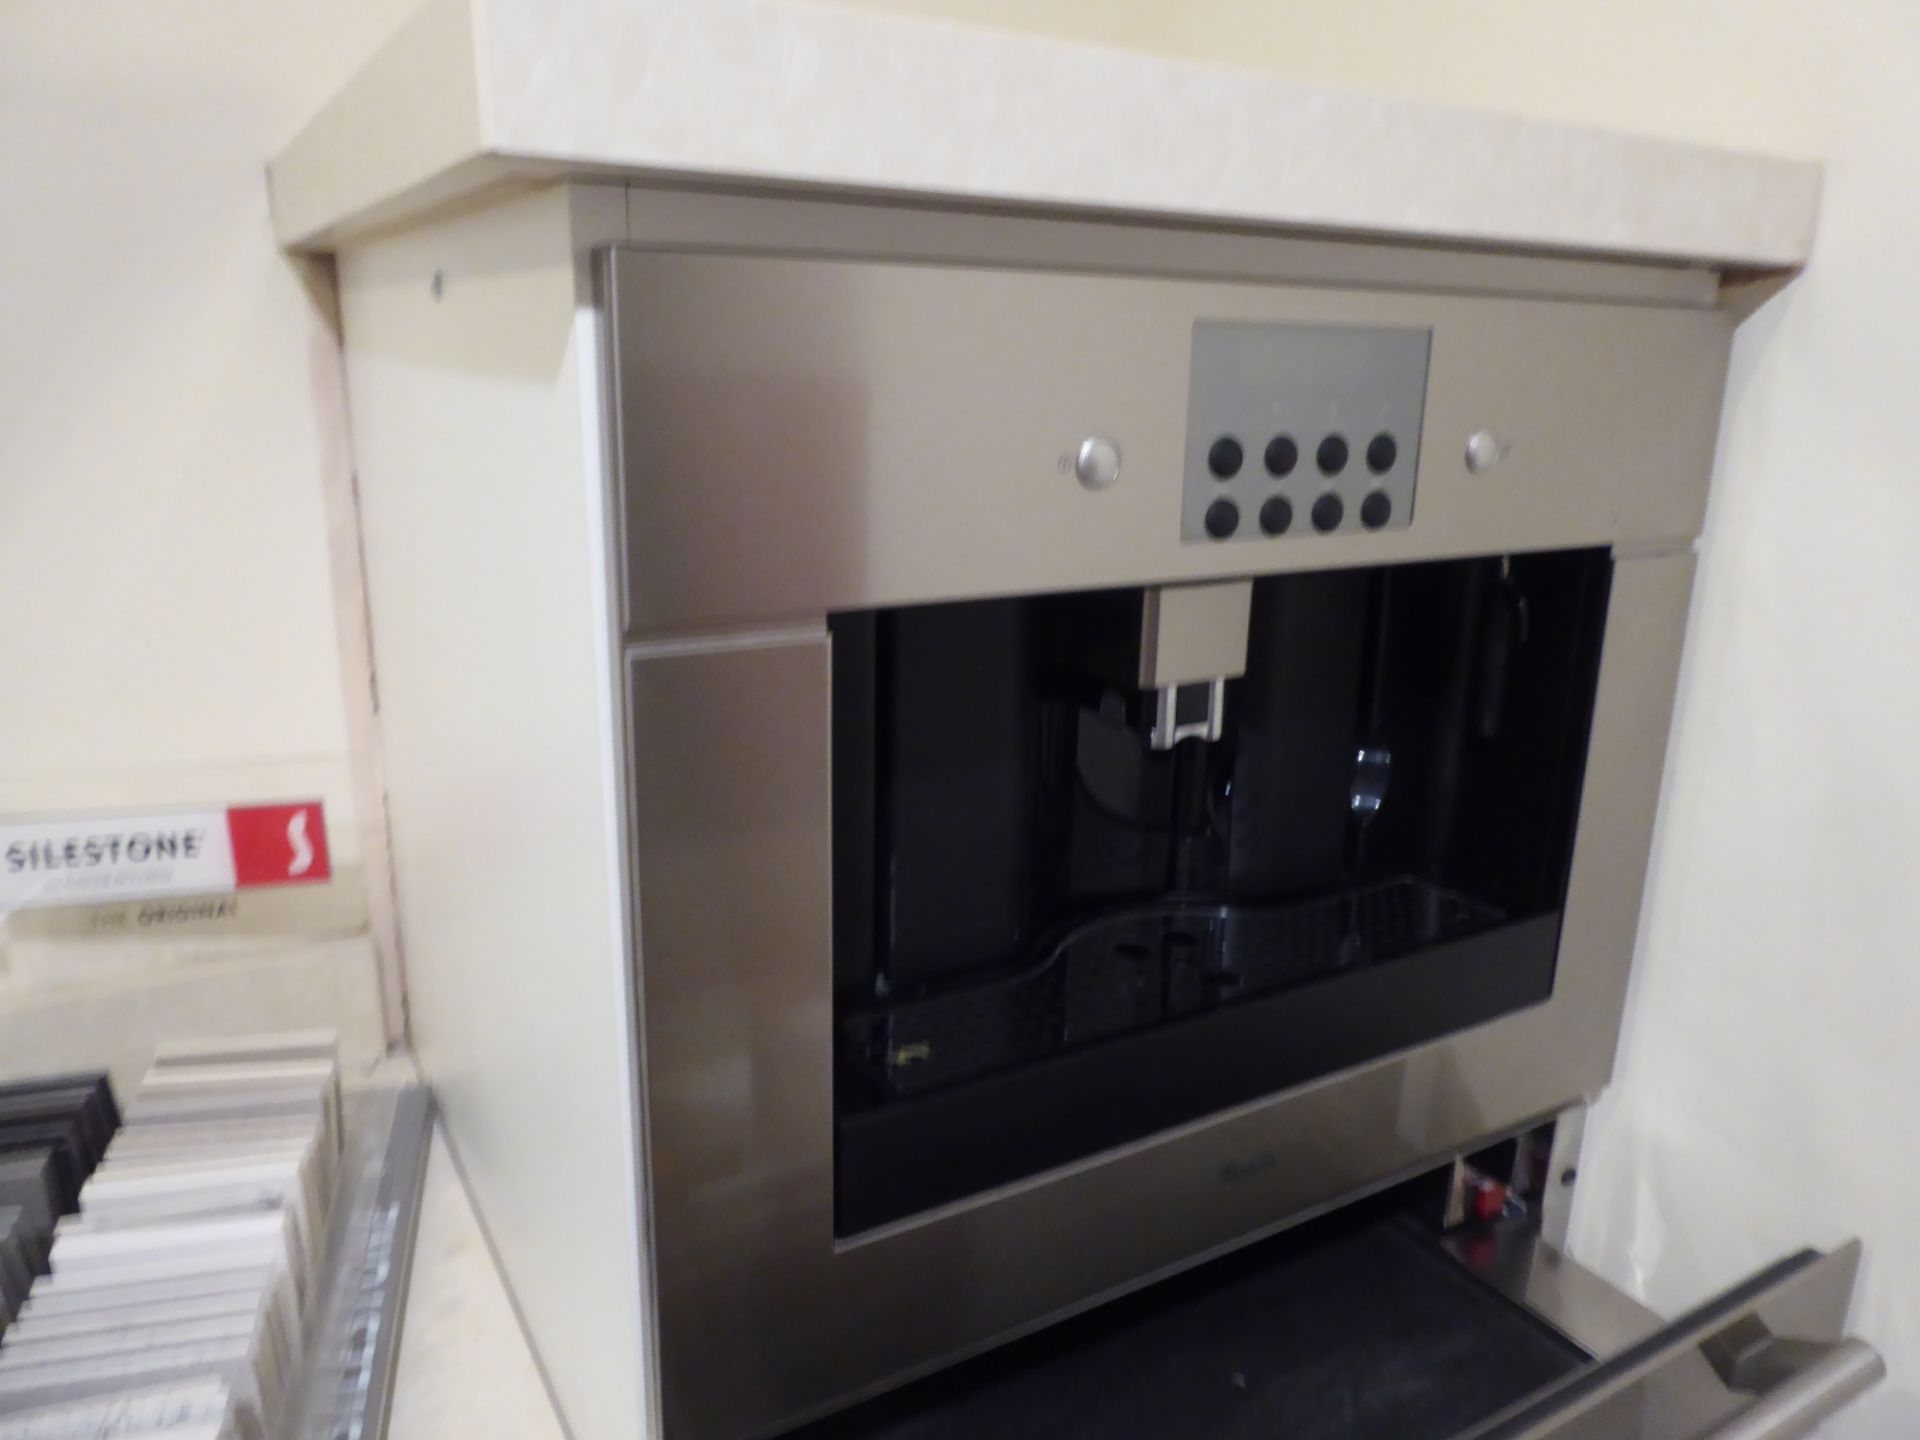 Lot 19 - Whirlpool ACE 100x stainless steel built in coffee machine, 46cm high